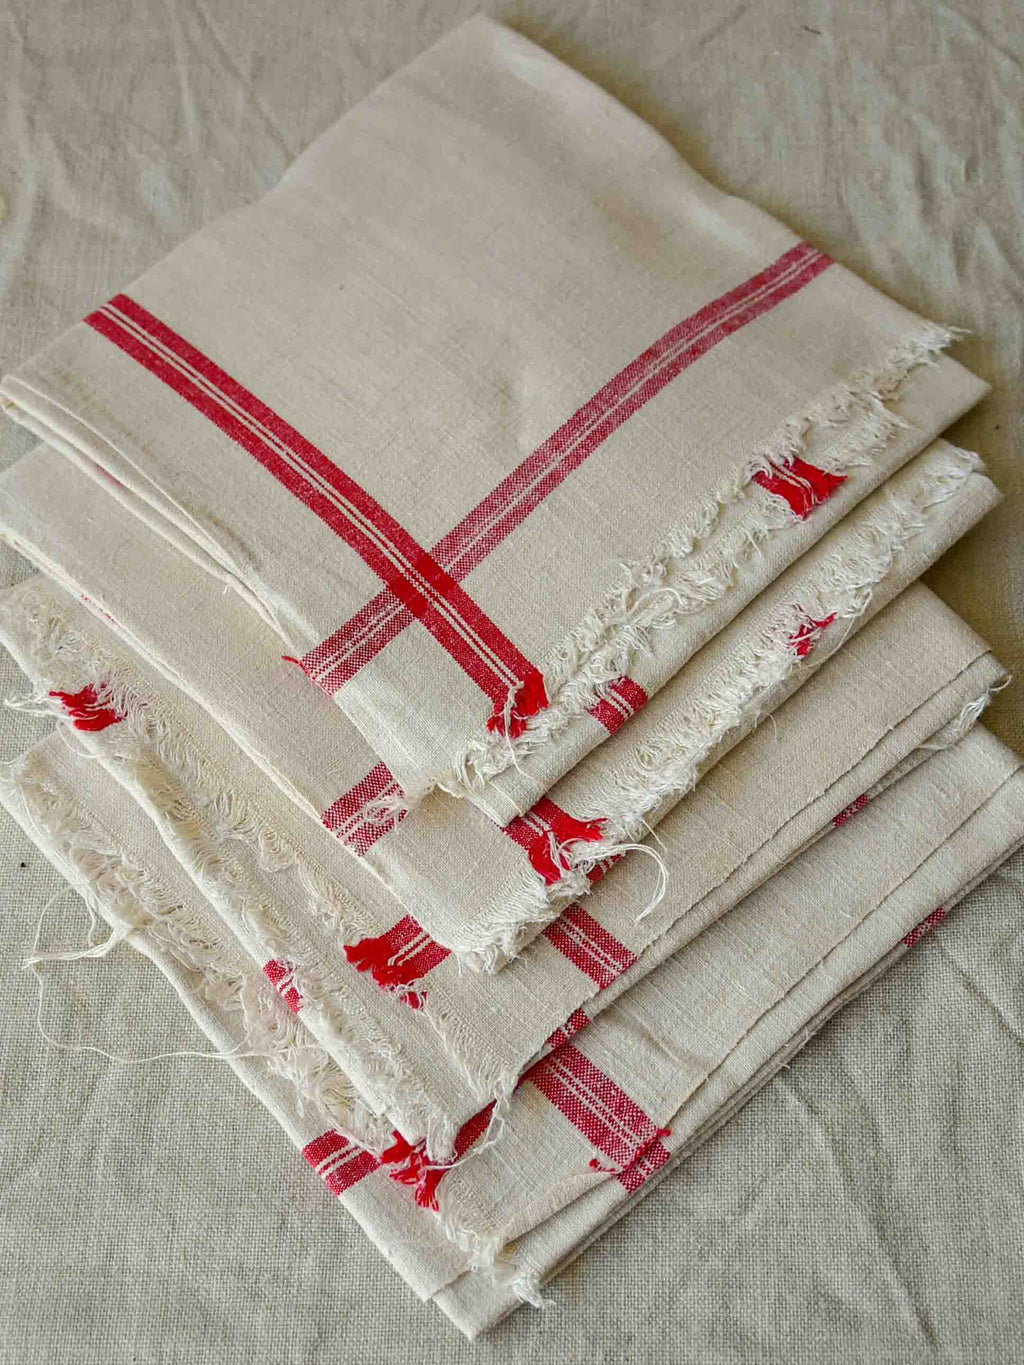 Four antique French tea towels / serviettes with red stripes